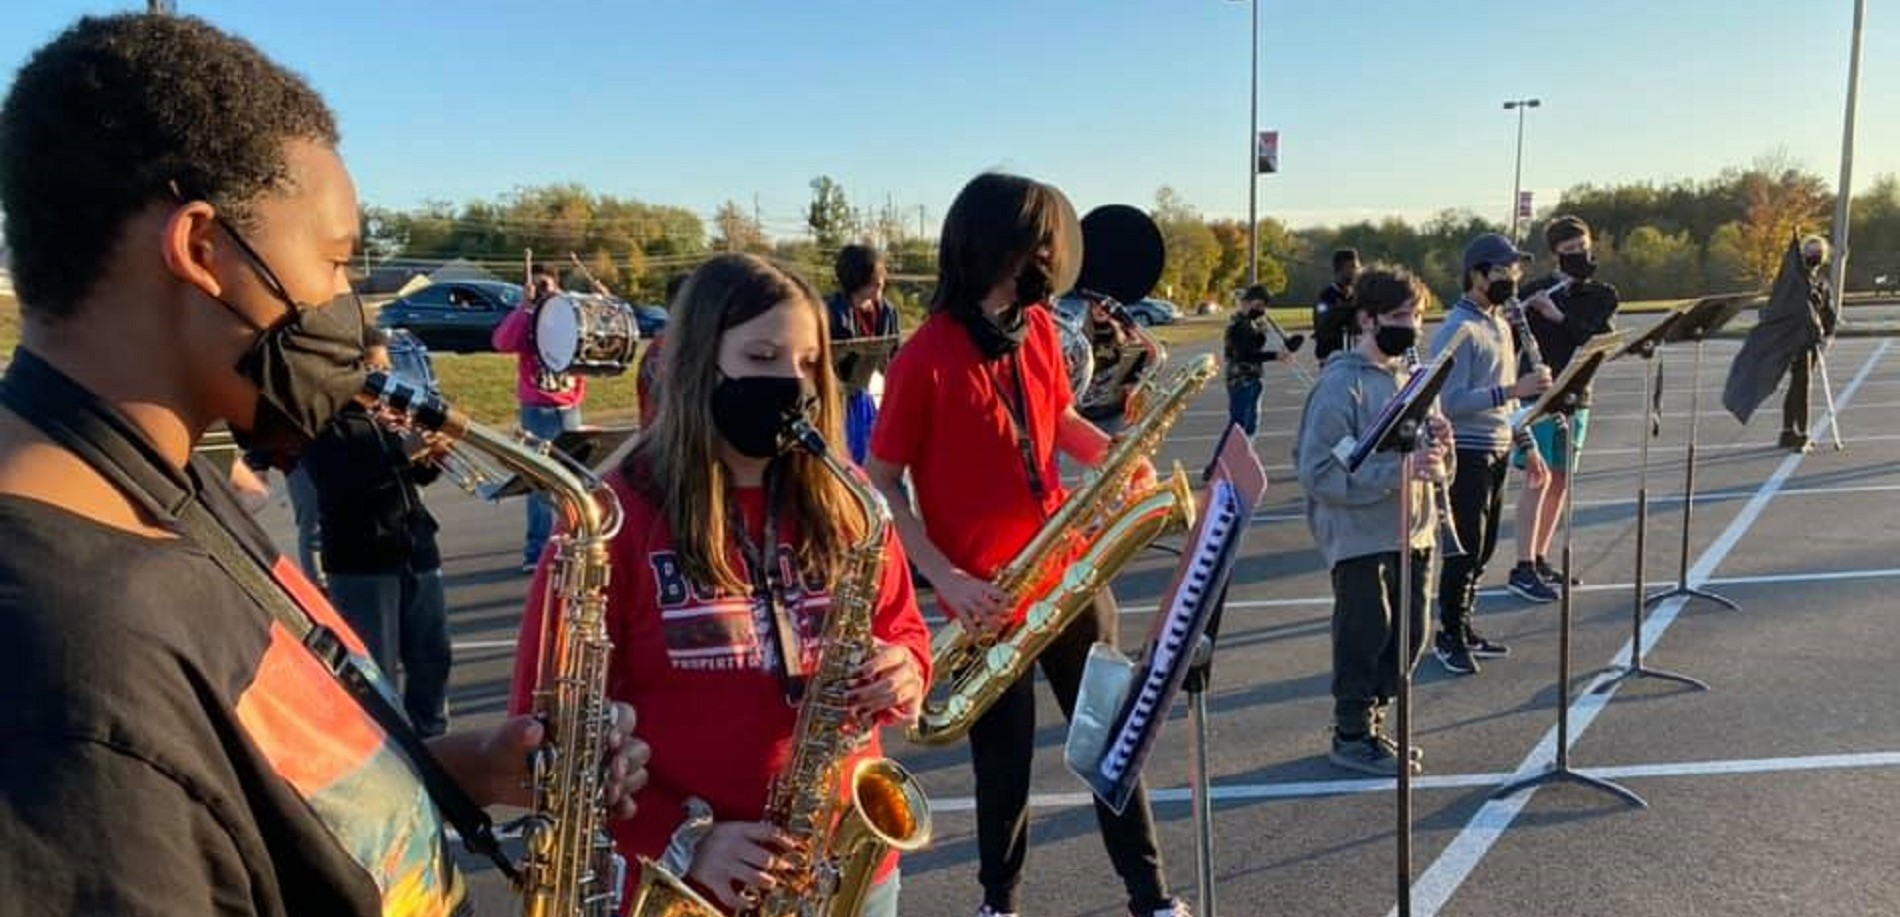 The John Hardin High School band played during Homecoming festivities at school